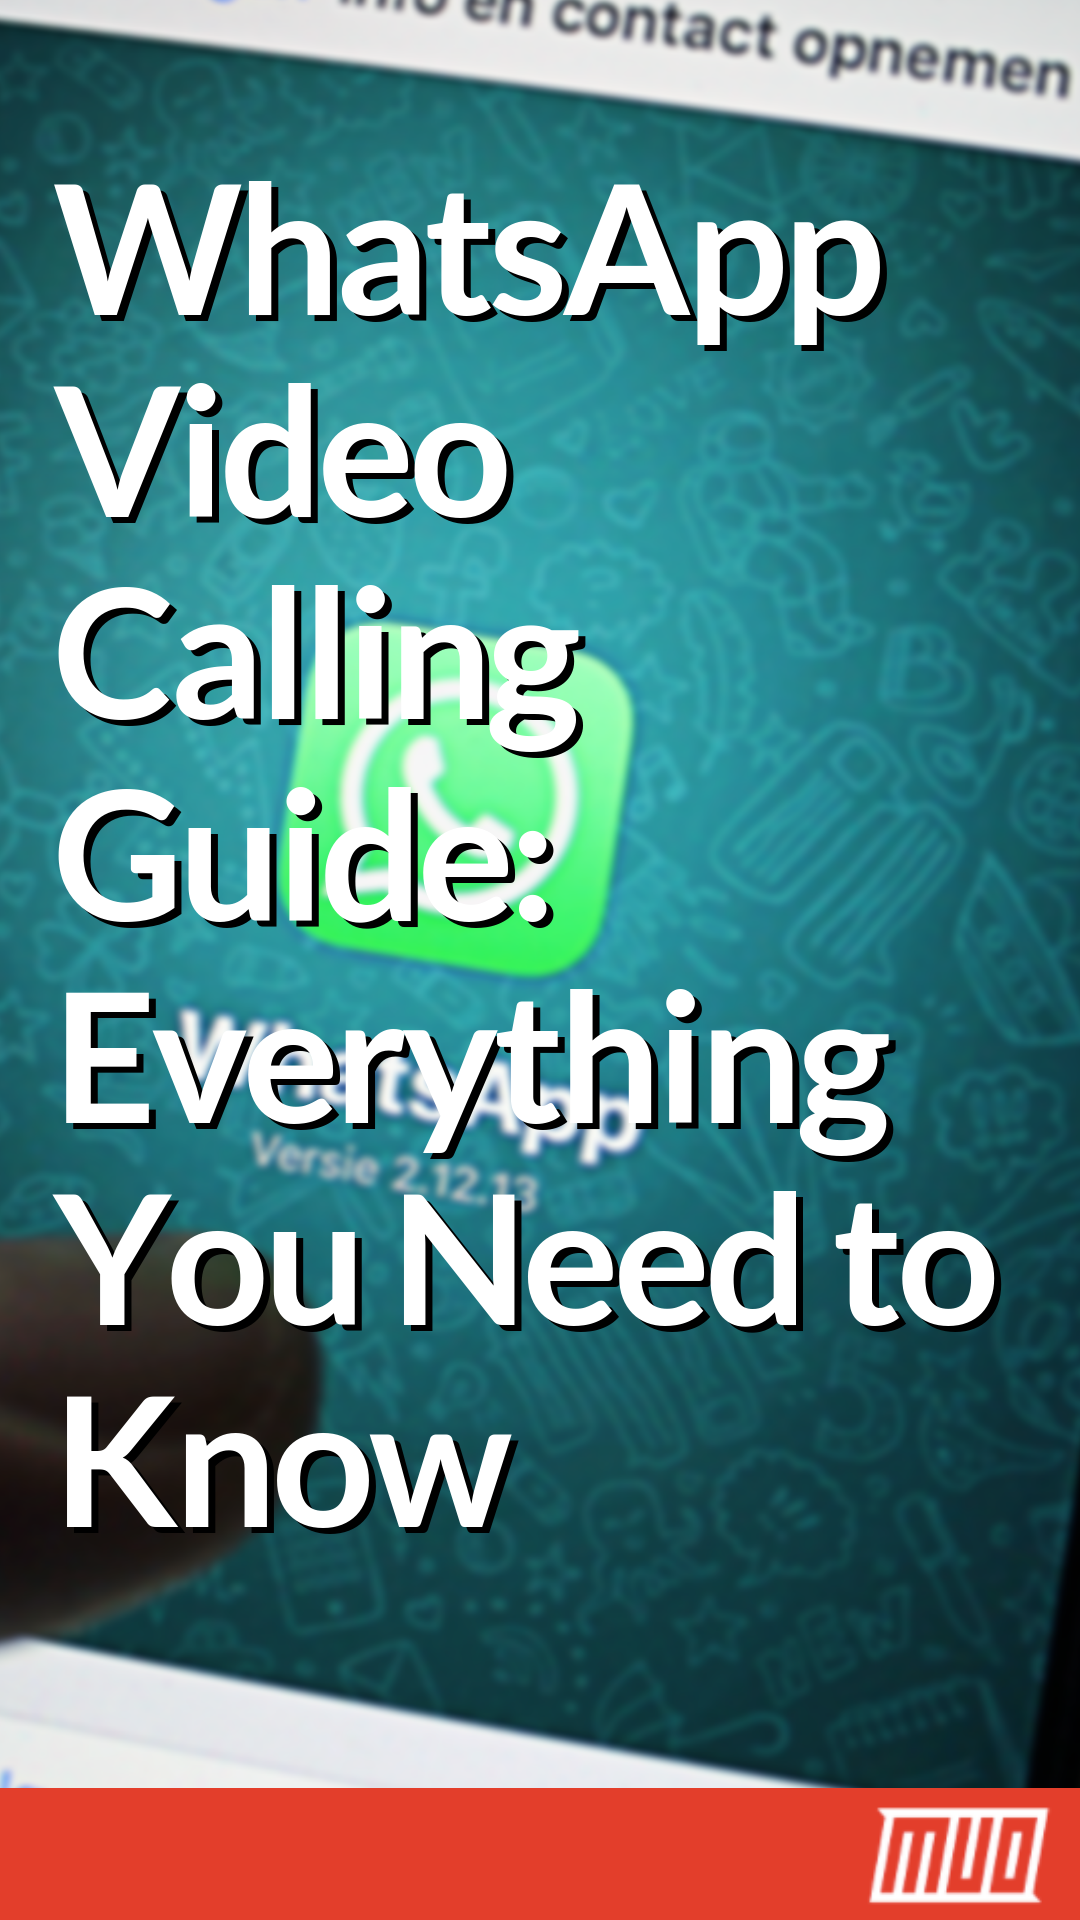 WhatsApp Video Calling Guide Everything You Need to Know